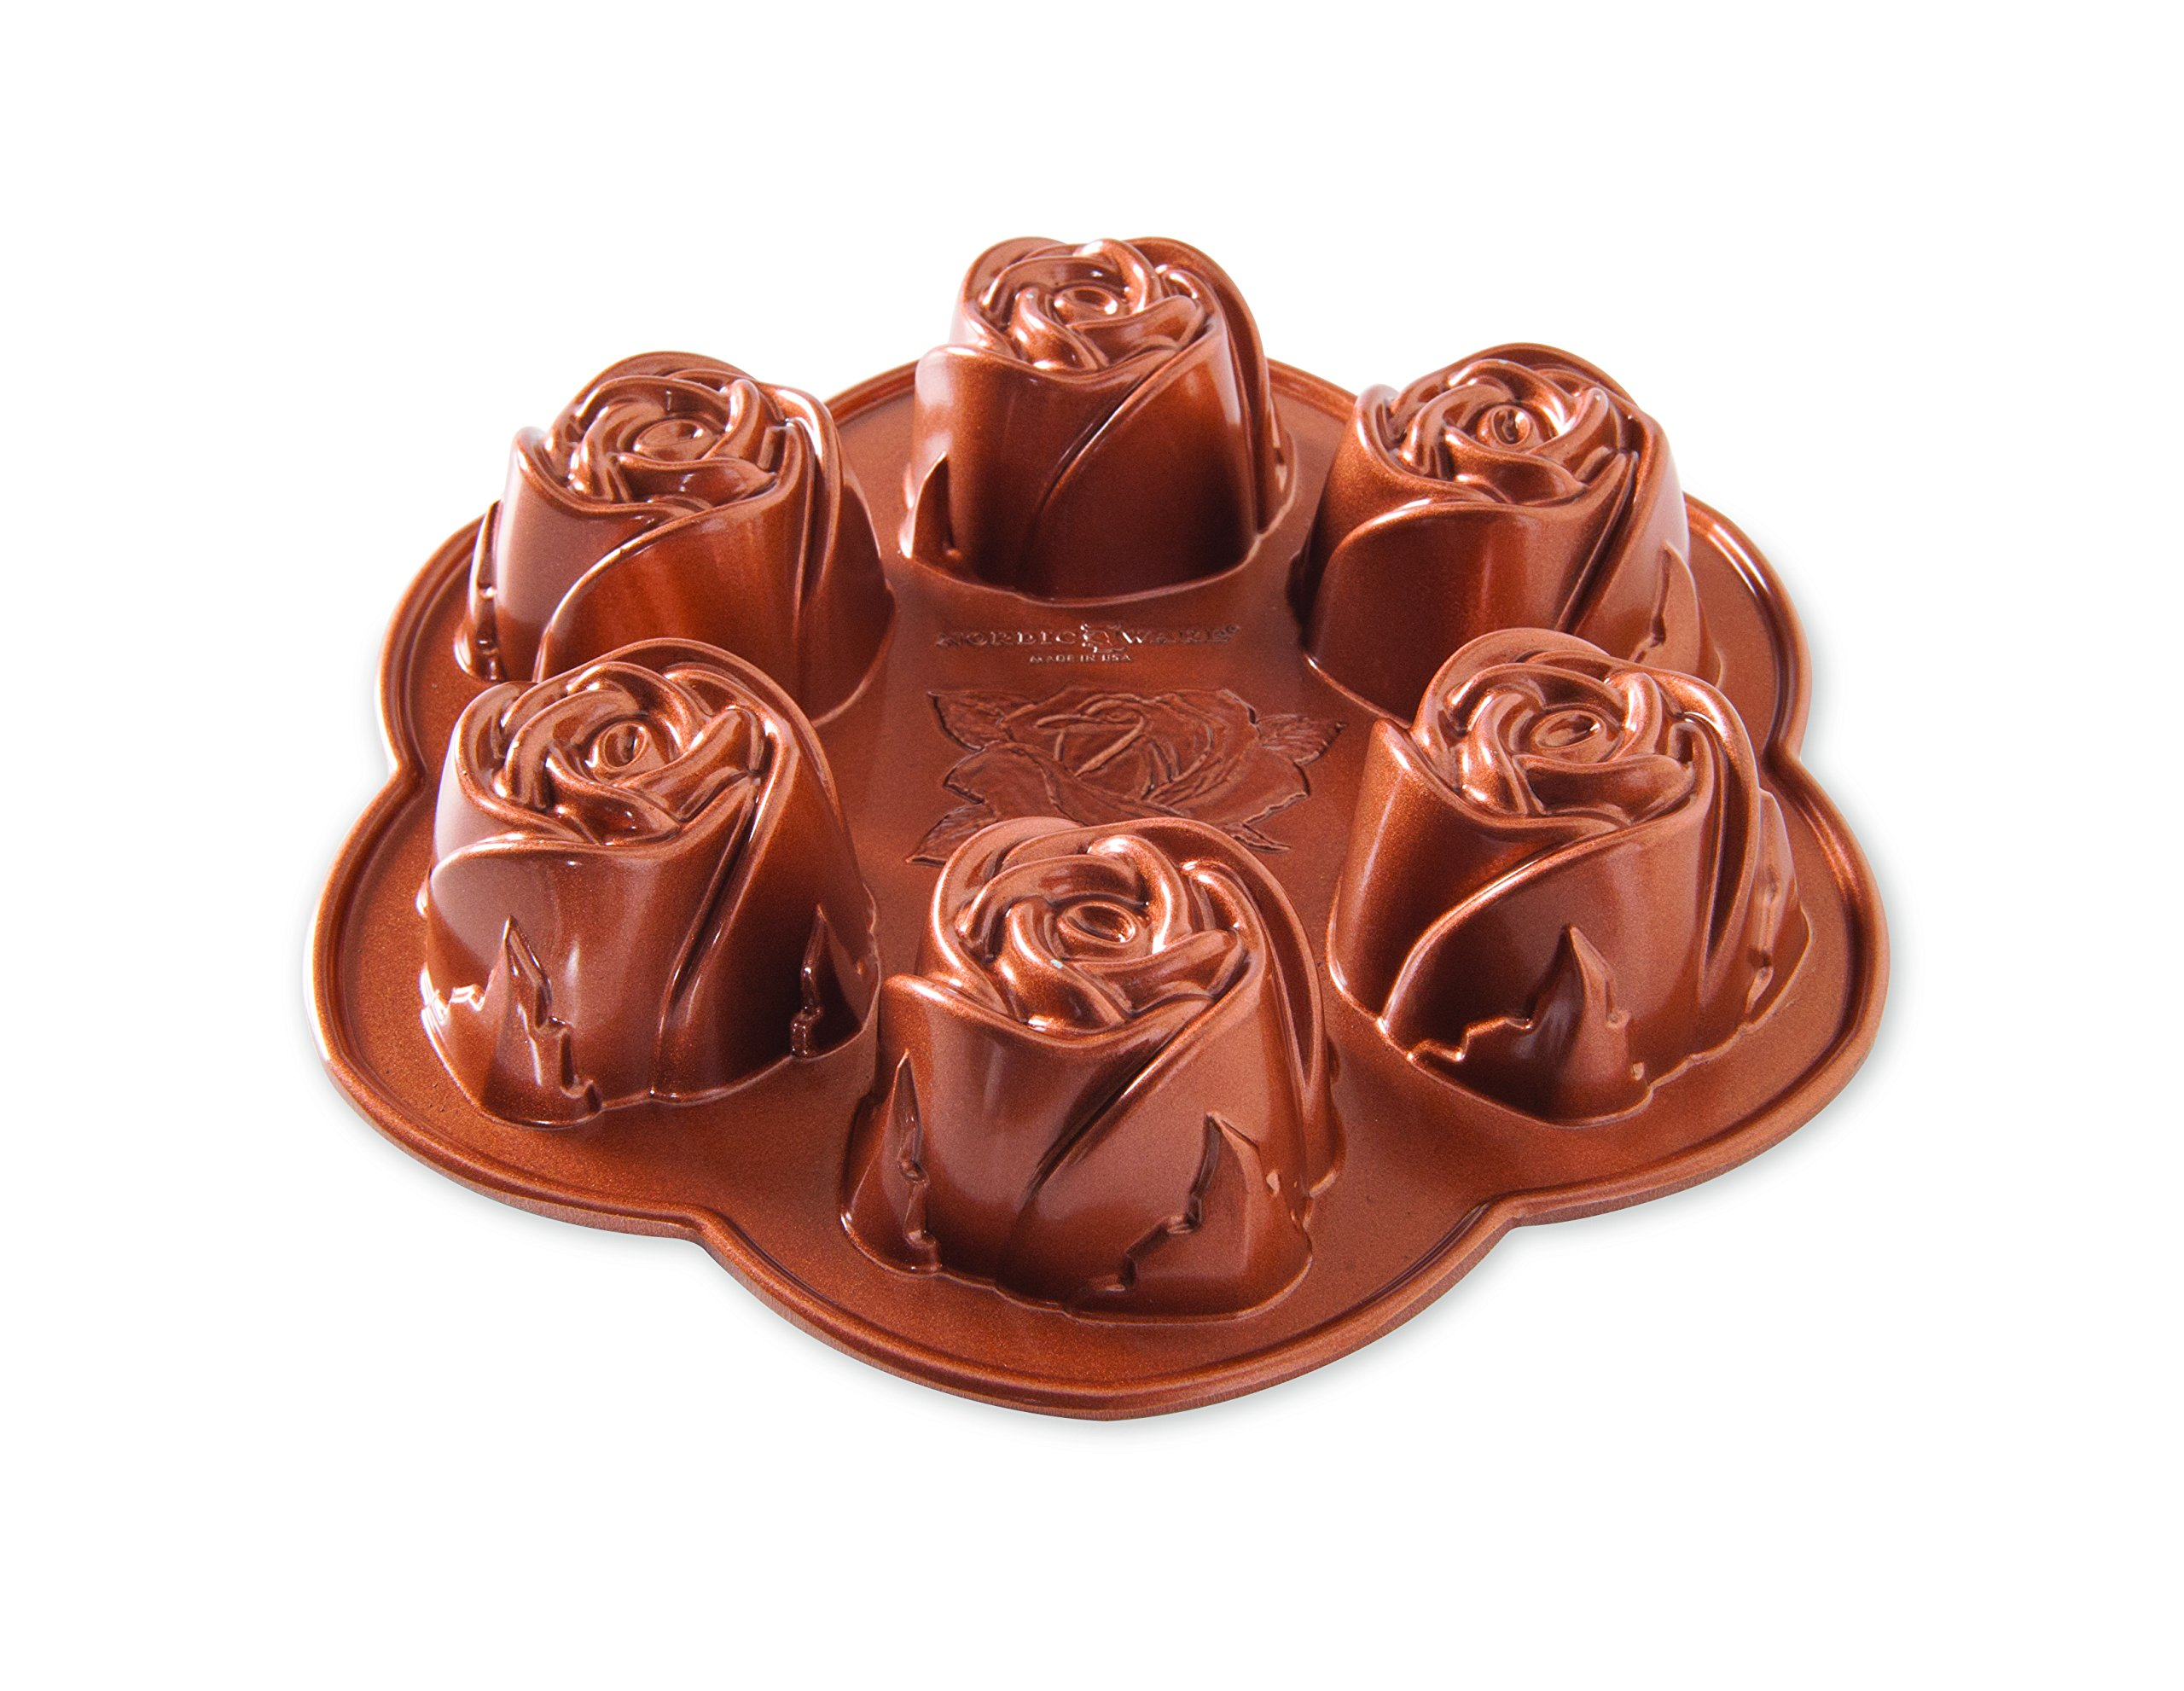 Nordic Ware 85147AMZ Rose Bud Pan, 6 Cakelets, Copper